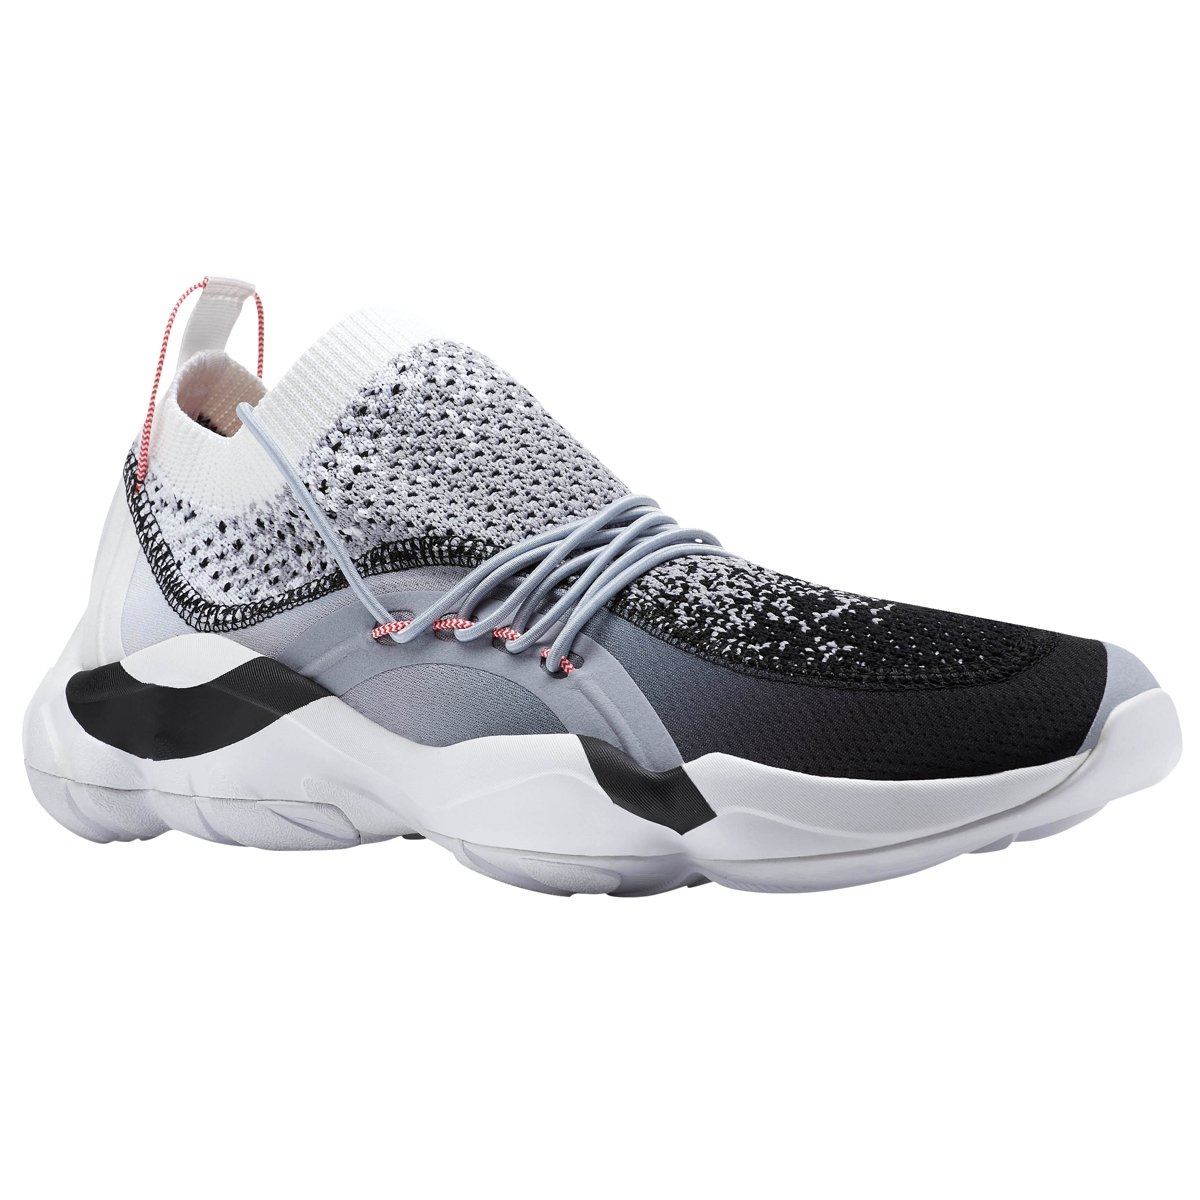 Reebok DMX Fusion Shoe Unisex Casual 9 Black-White-Cool Shadow